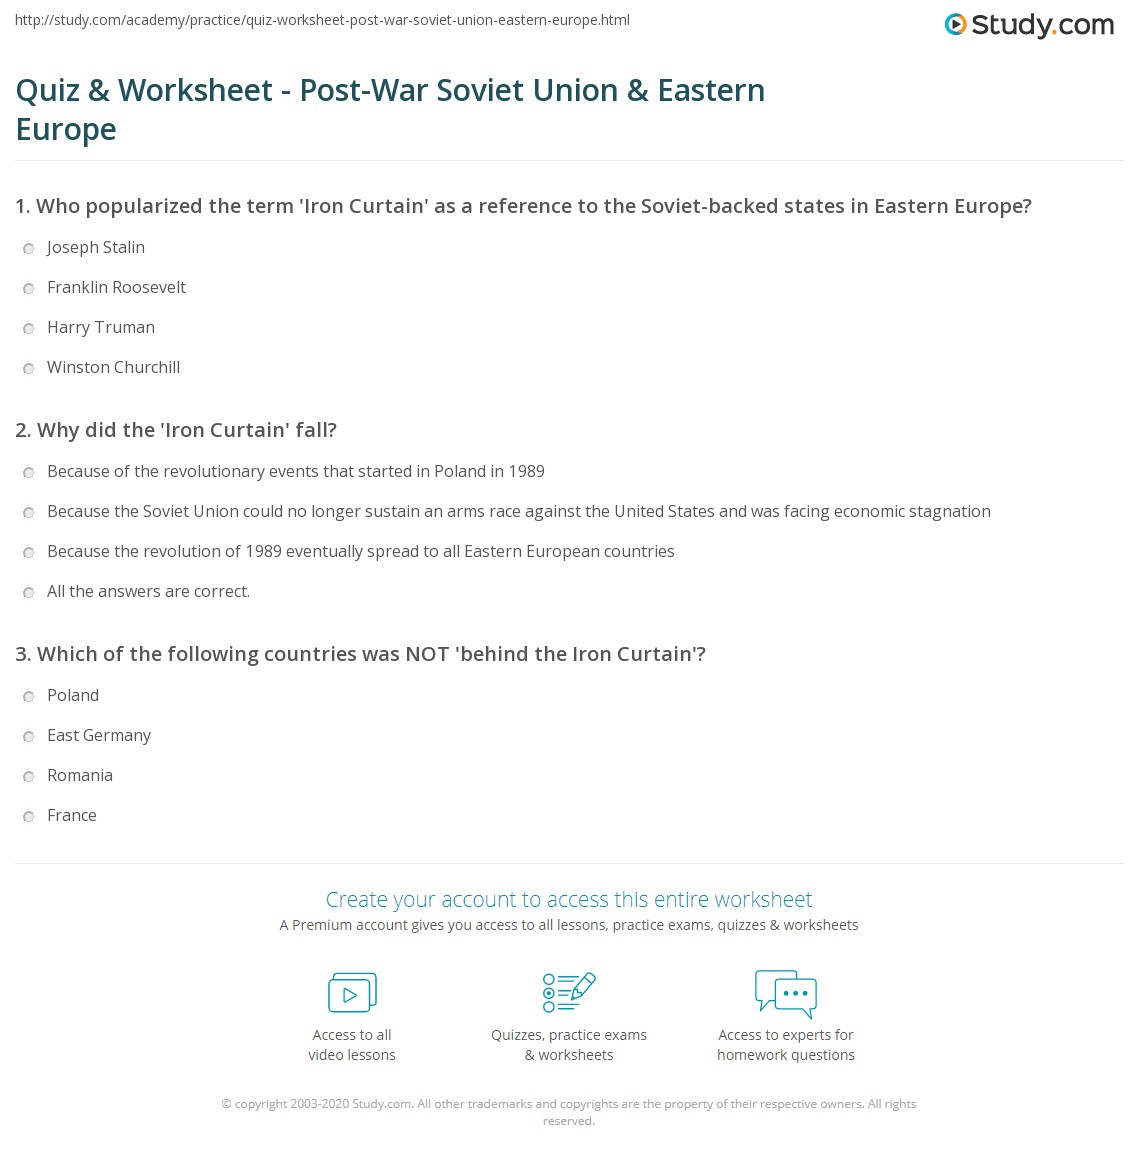 quiz worksheet post war soviet union eastern europe. Black Bedroom Furniture Sets. Home Design Ideas